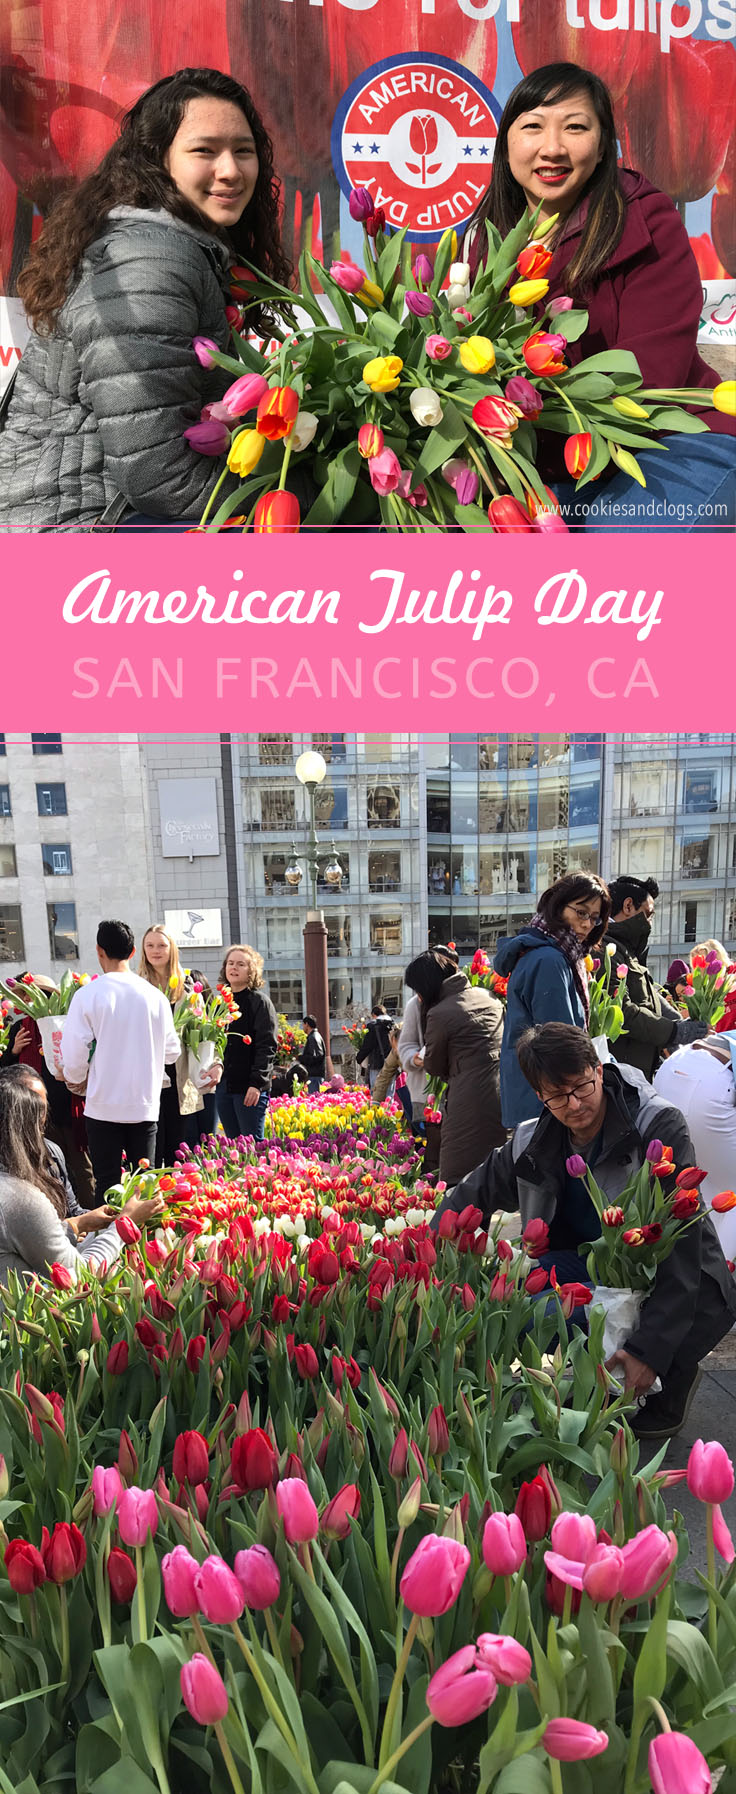 2018 American Tulip Day in San Francisco California at Union Square / Tulpendag San Francisco